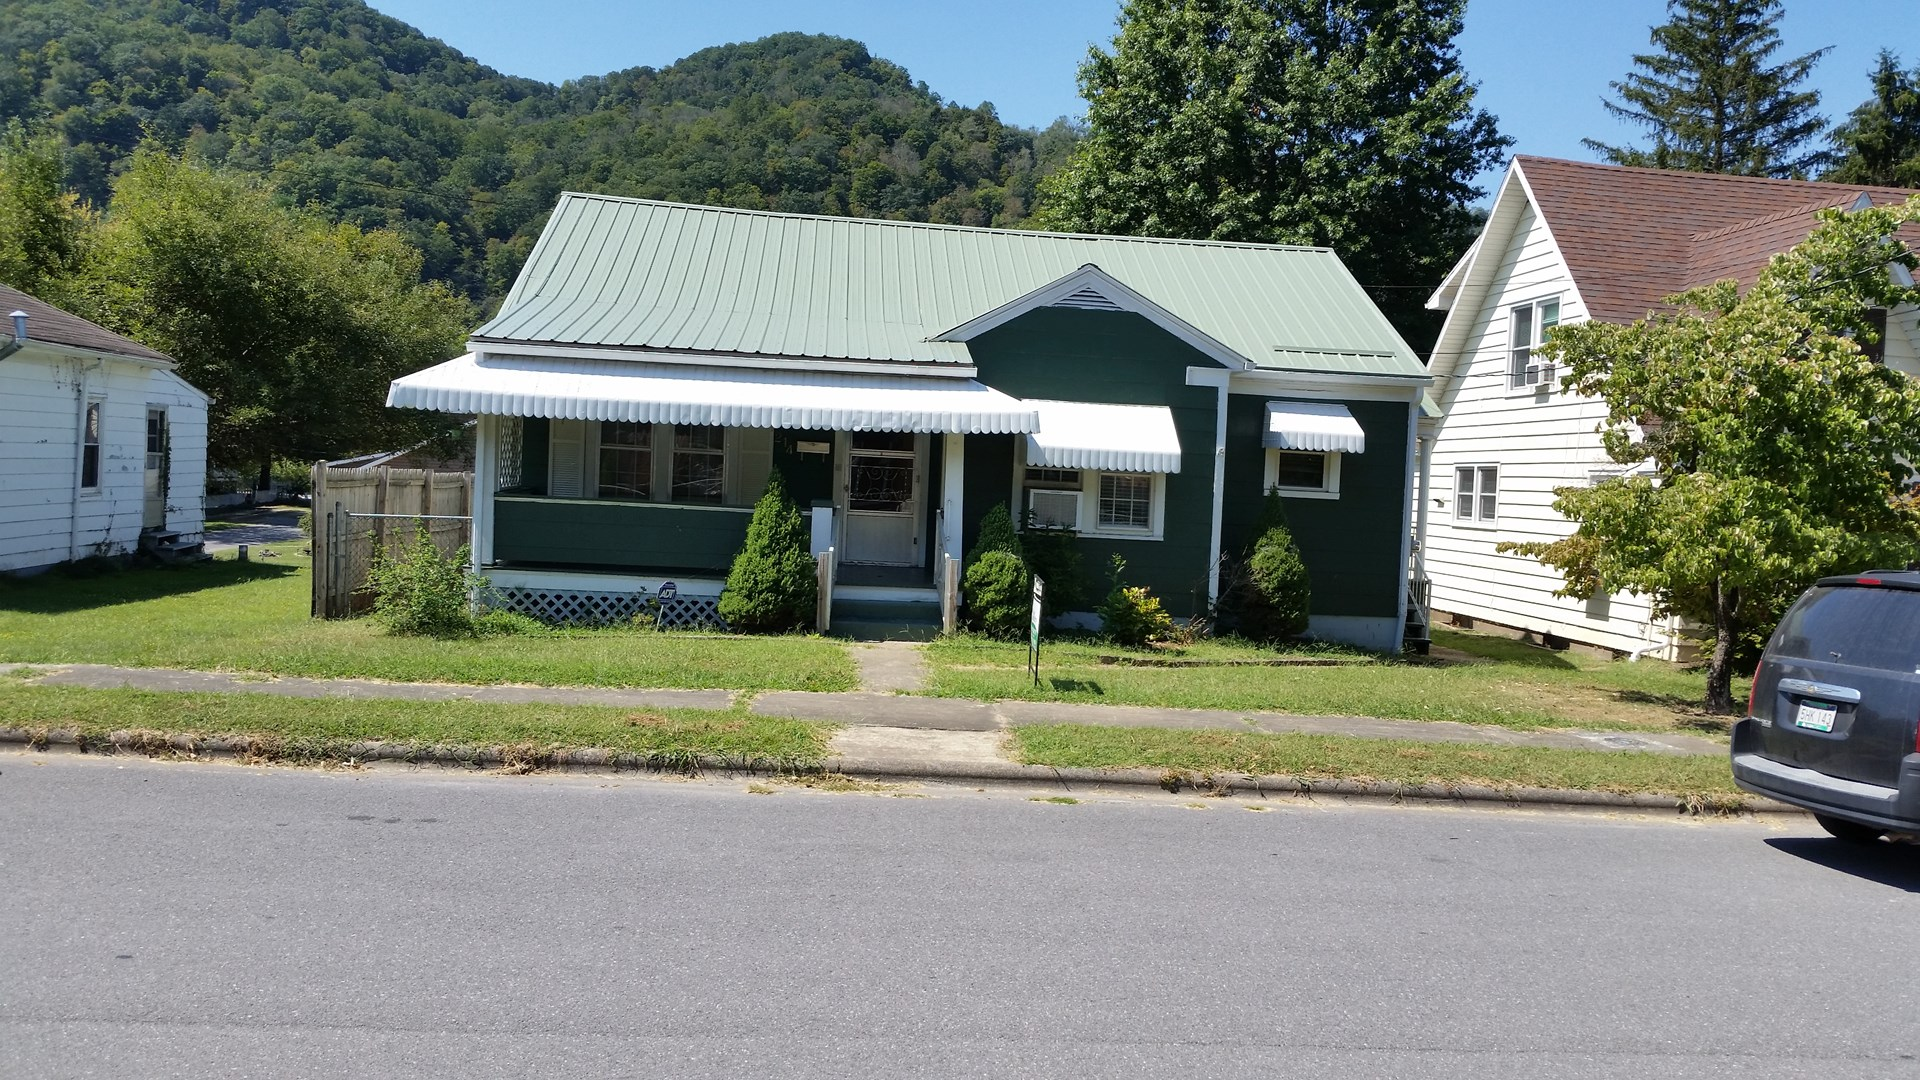 COZY 2 BR HOME, ONE FLOOR LEVEL, SMALL TOWN